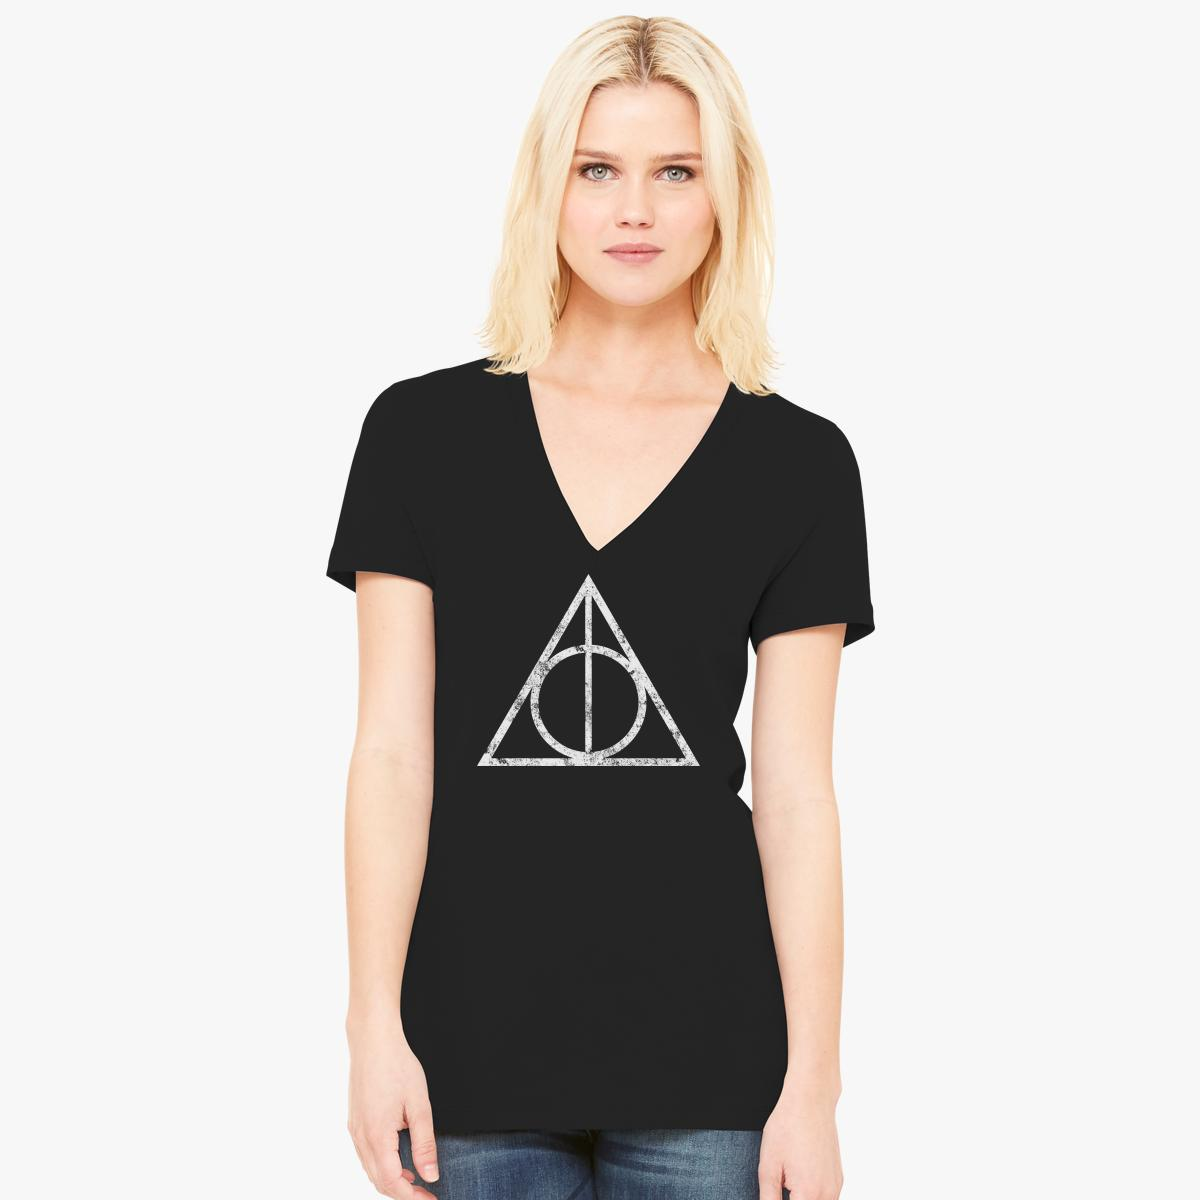 potter black single women Buy women's harry potter crest black t-shirt at walmartcom.